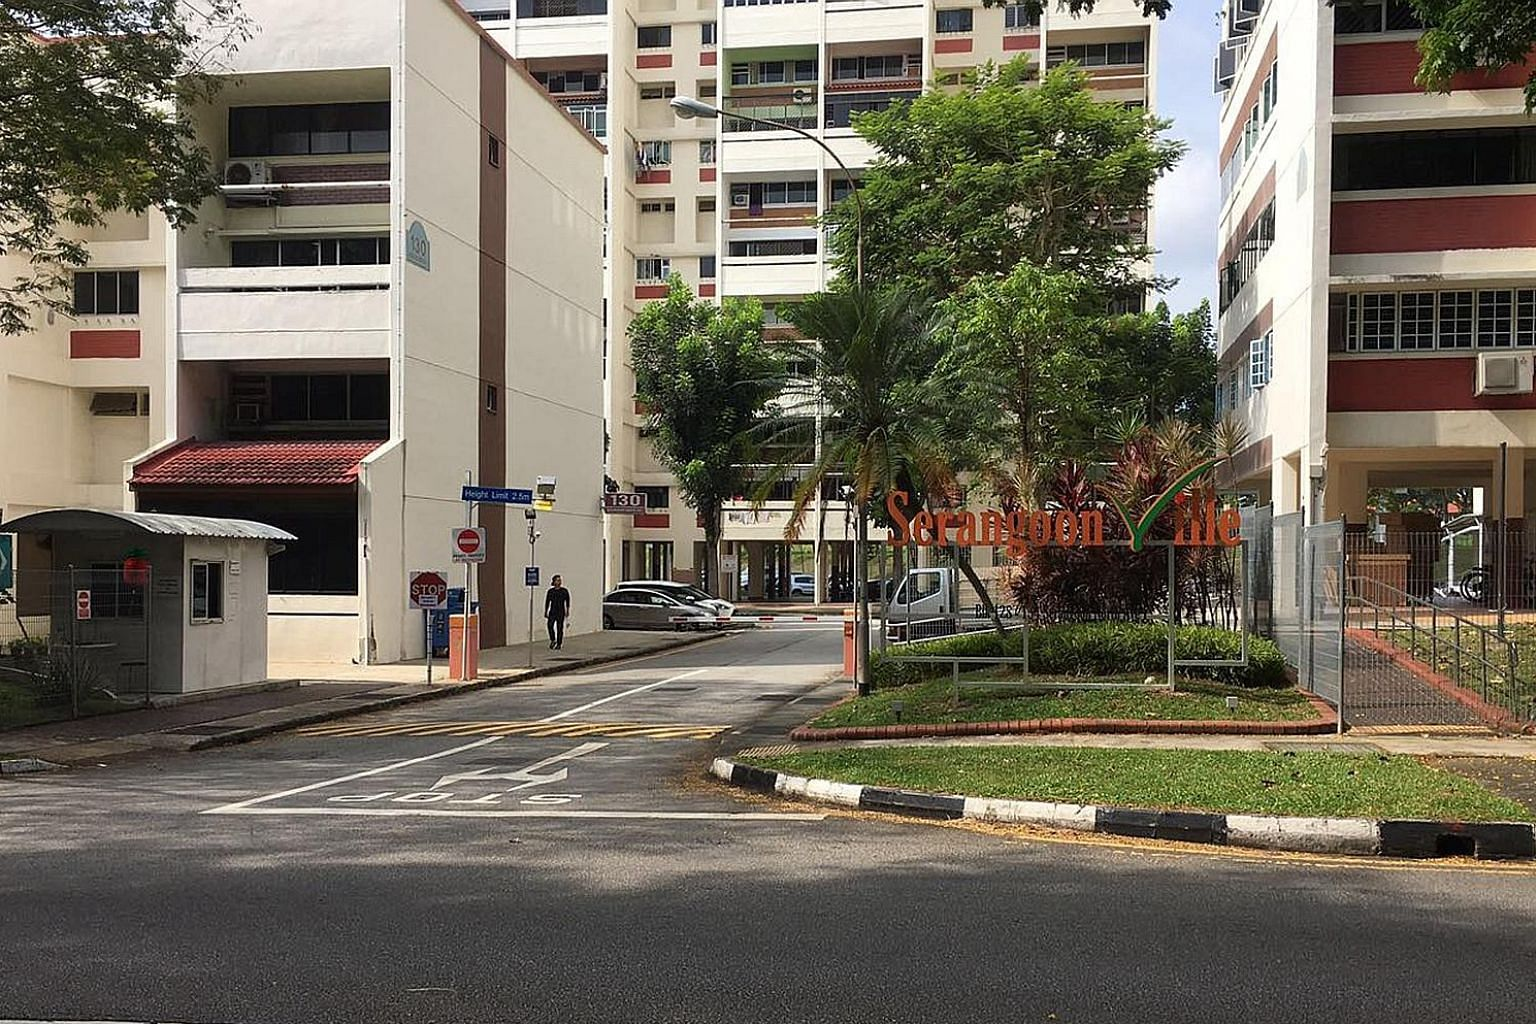 In July, an Oxley Holdings-led consortium, which includes Lian Beng Group and others as partners, bought privatised HUDC estate Serangoon Ville for $499 million.